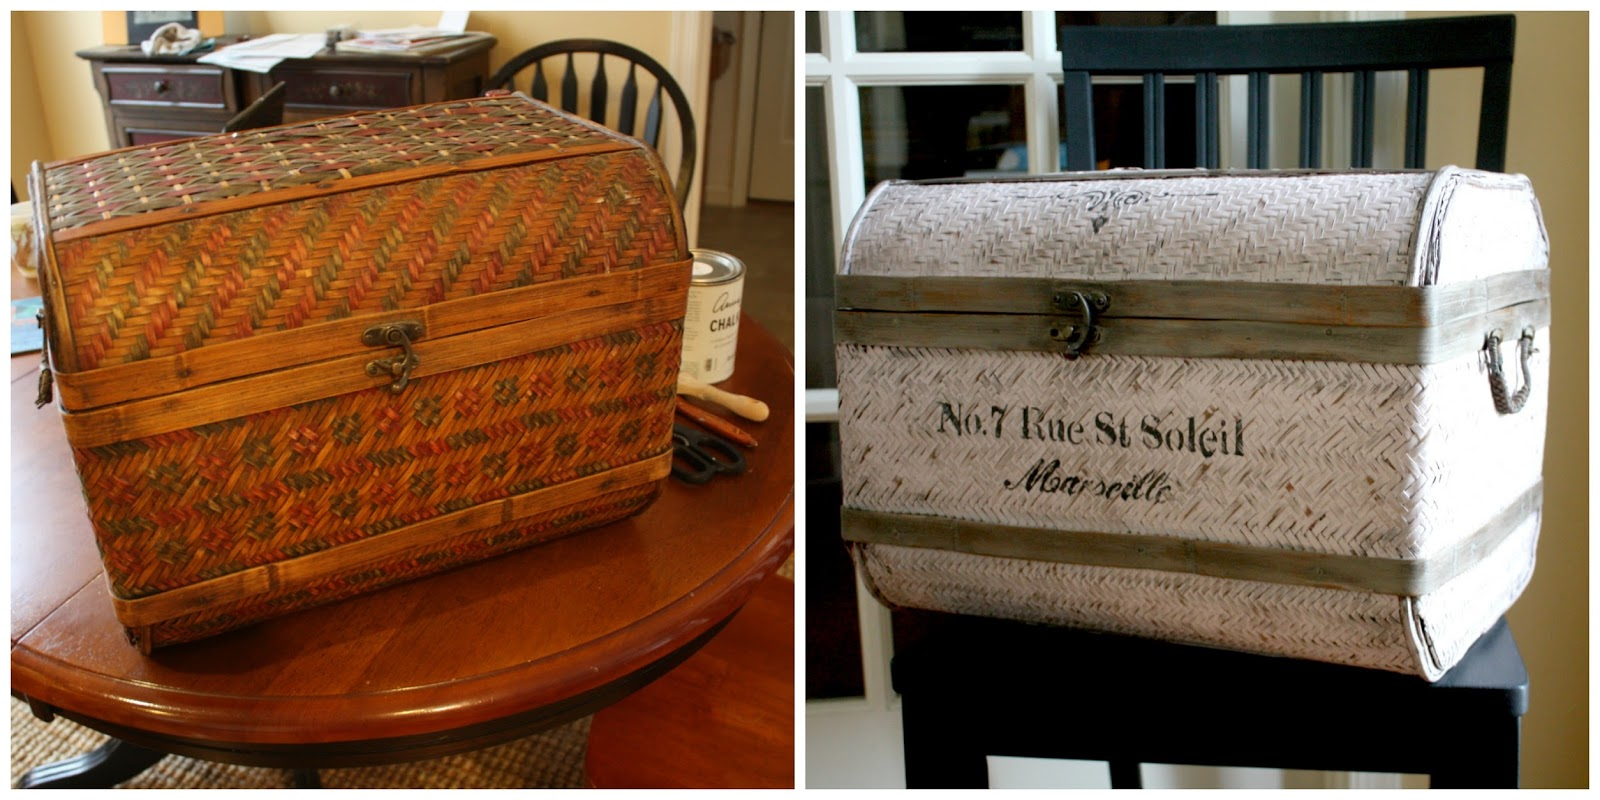 Decorative trunk before and after